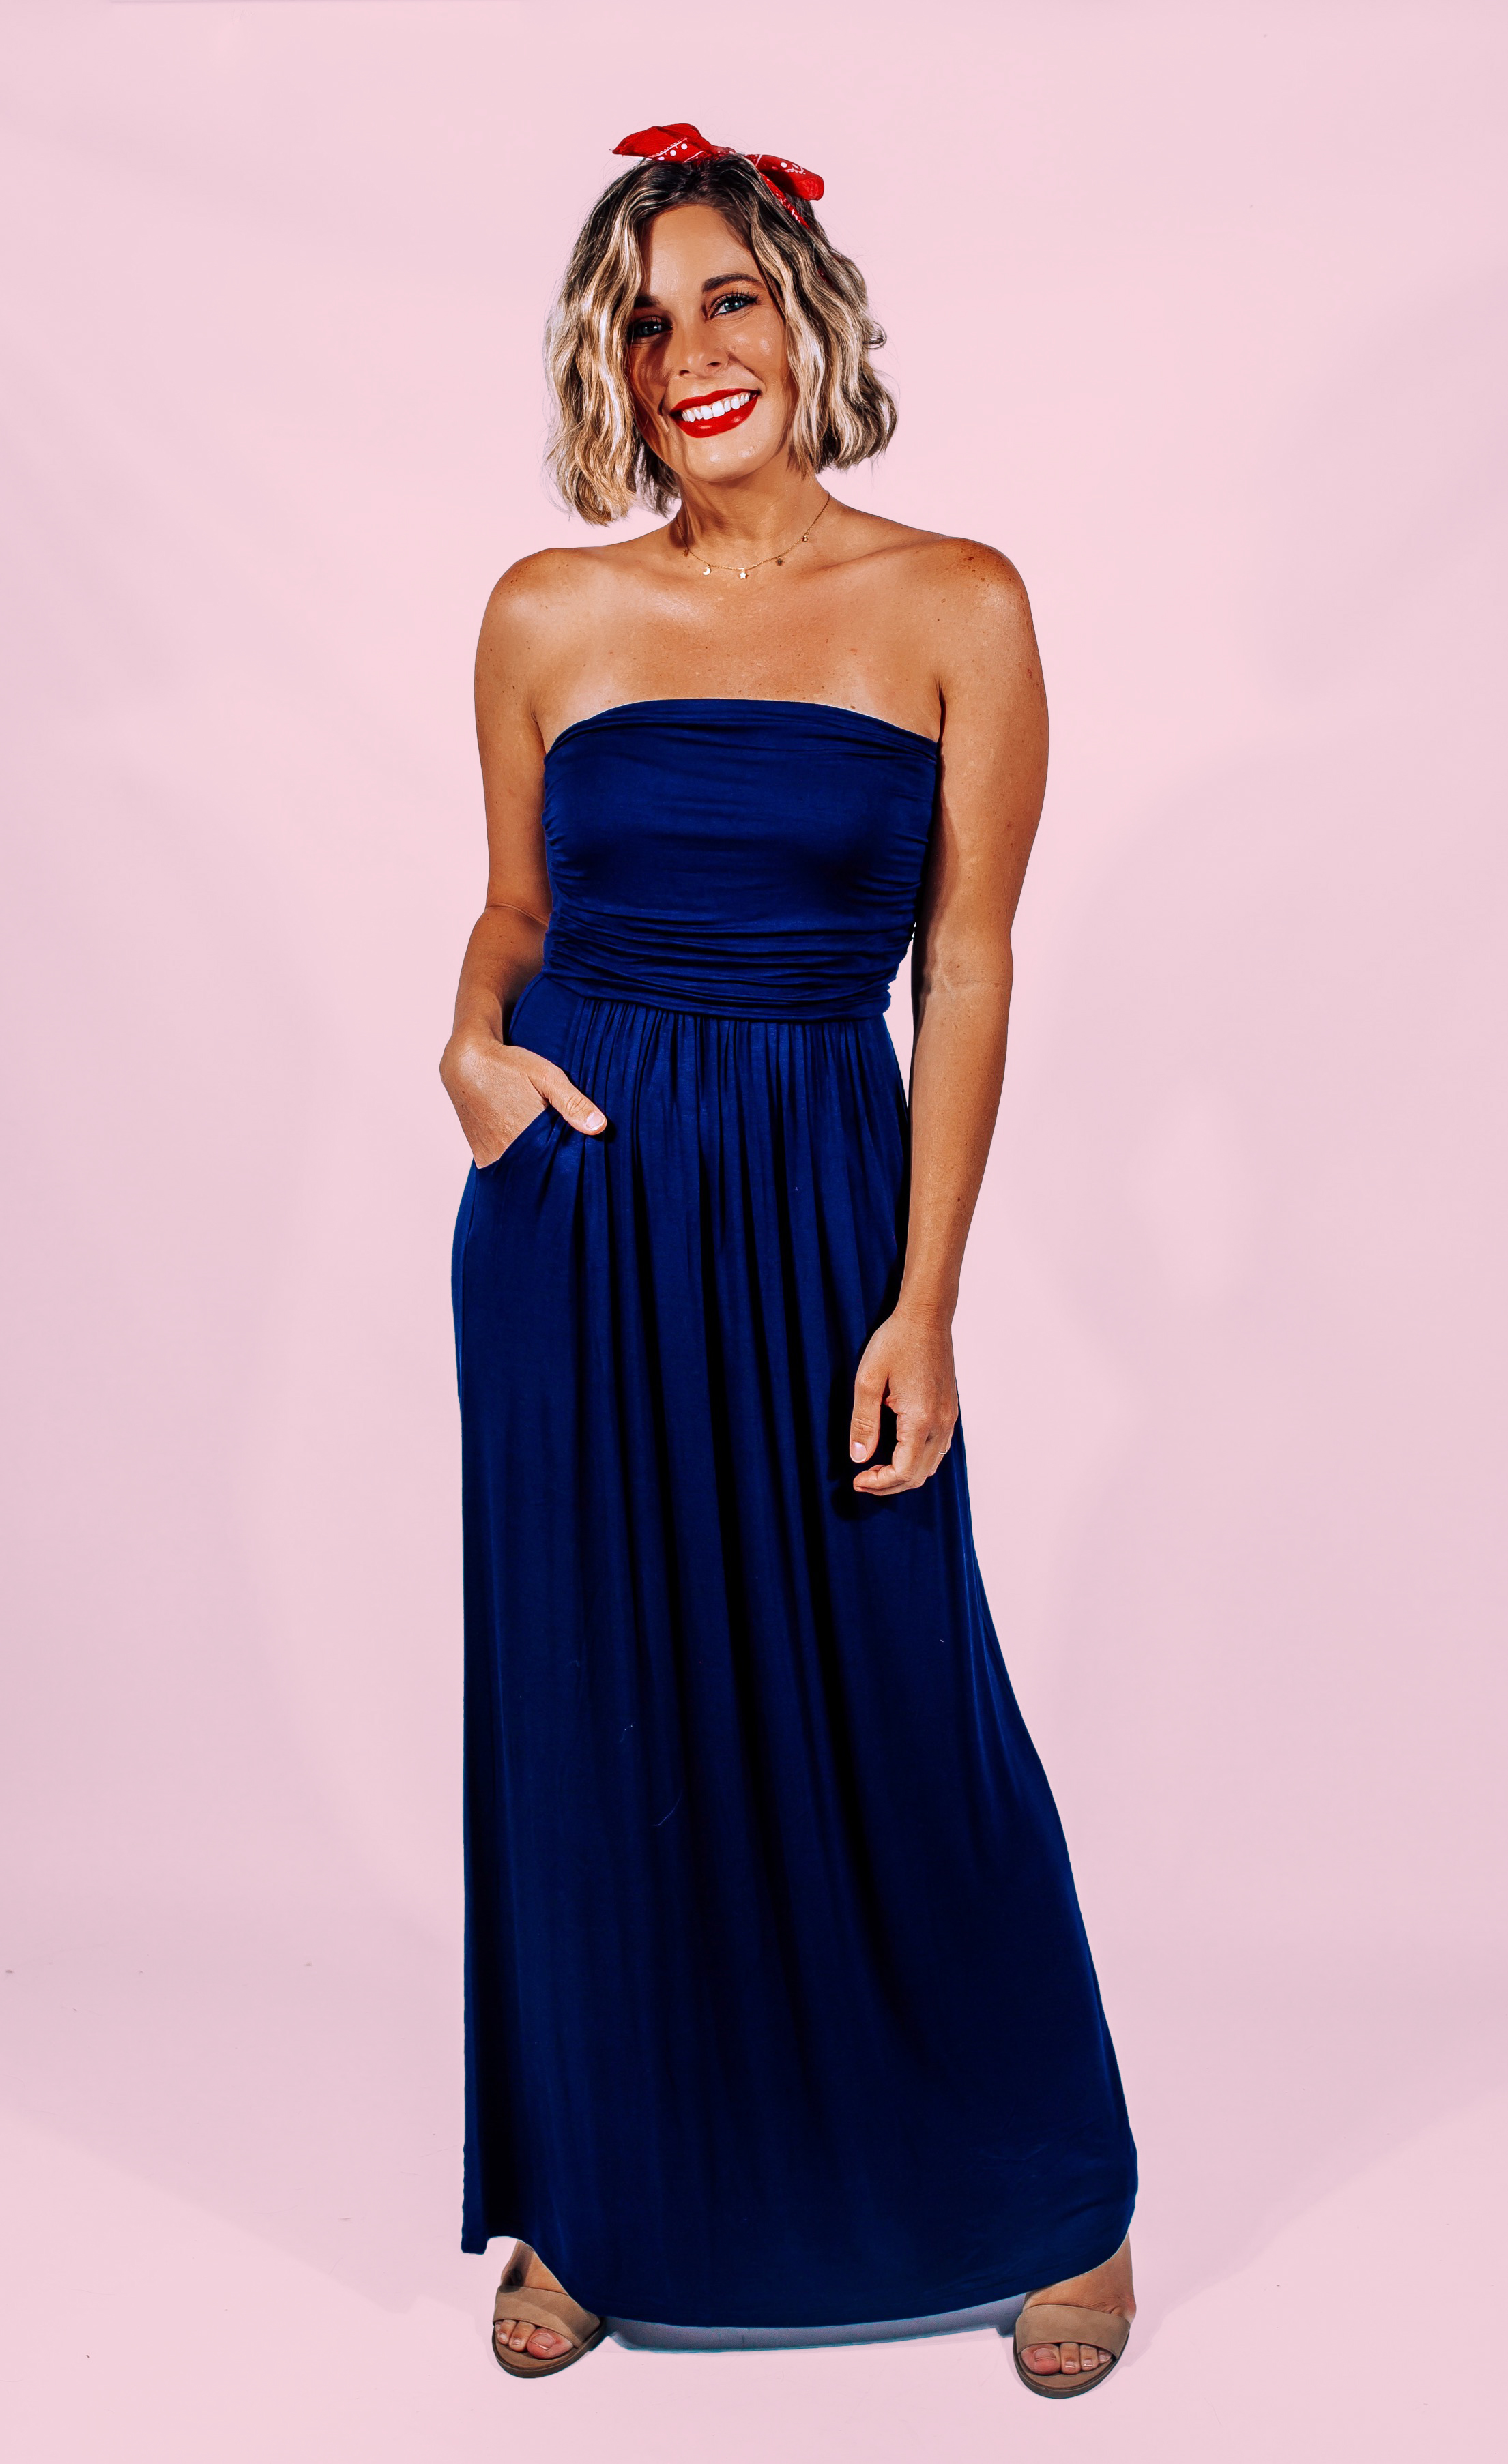 """NAVY TUBE TOP MAXI DRESS WITH POCKETS. 94% RAYON MODAL, 6% SPANDEX. AMANDA IS 5'7"""" A SIZE 2, WEARING A SMALL. FRANCELINE IS A SIZE 16, BUST 40, WEARING A LARGE. DALLAN IS 5'7"""" SIZE 4/6 WEARING A SMALL.  S 0-6 M 6-12 L 12-18"""